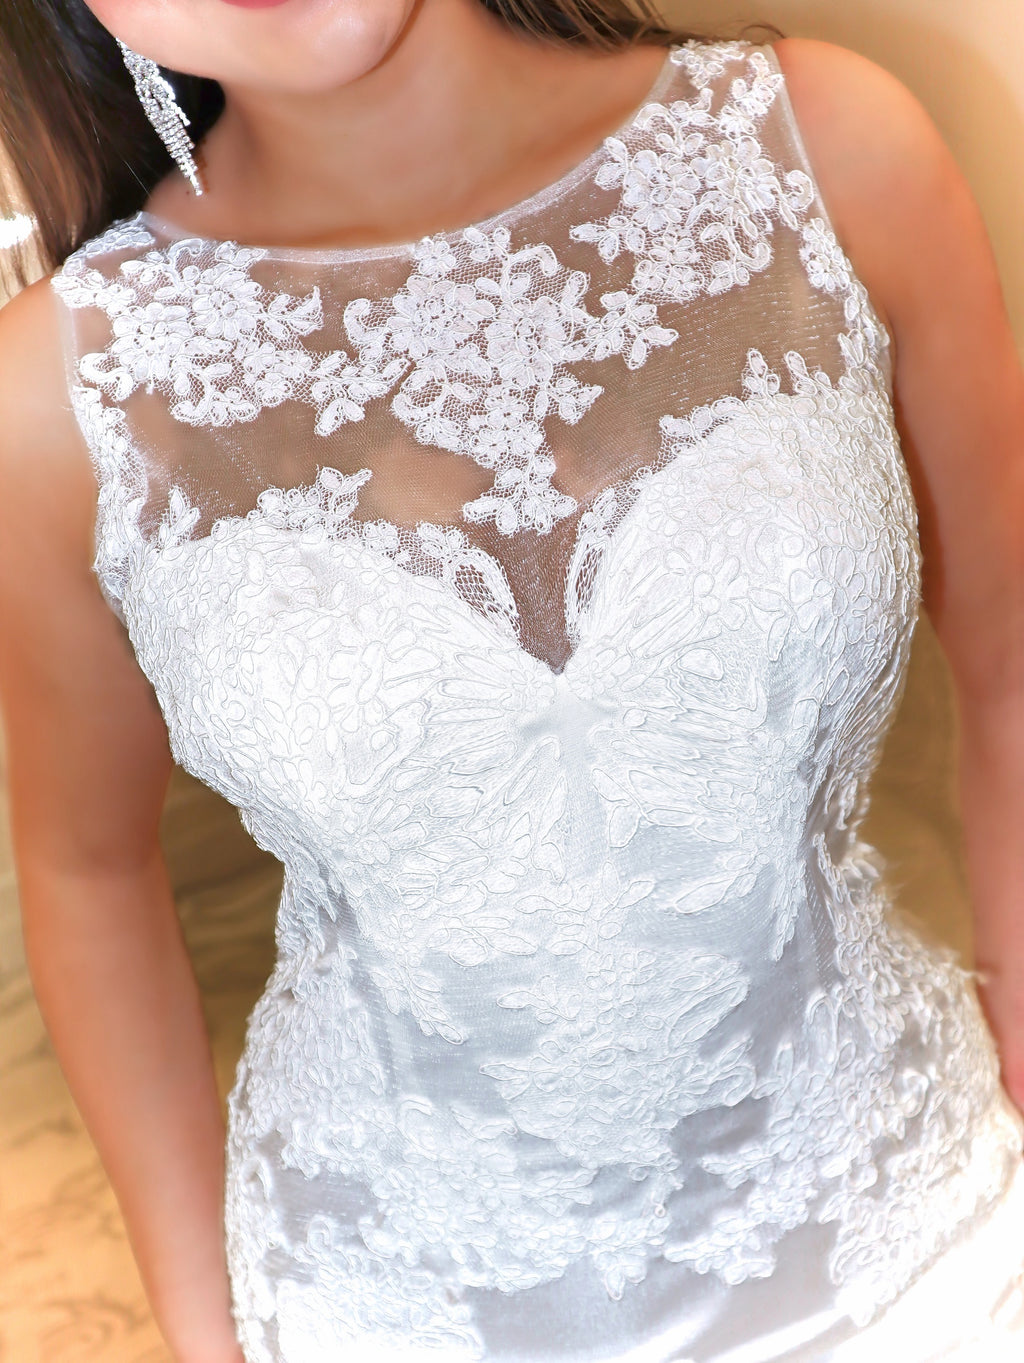 Closeup. This is the ultimate of sexy, featuring a fitted bodice, an illusion open back detailed with beautiful lace and a gorgeous mermaid silhouette. And it's at Rsvp Prom and Pageant, your source for the HOTTEST prom, pageant and exclusive evening gowns and located in Atlanta, Georgia!